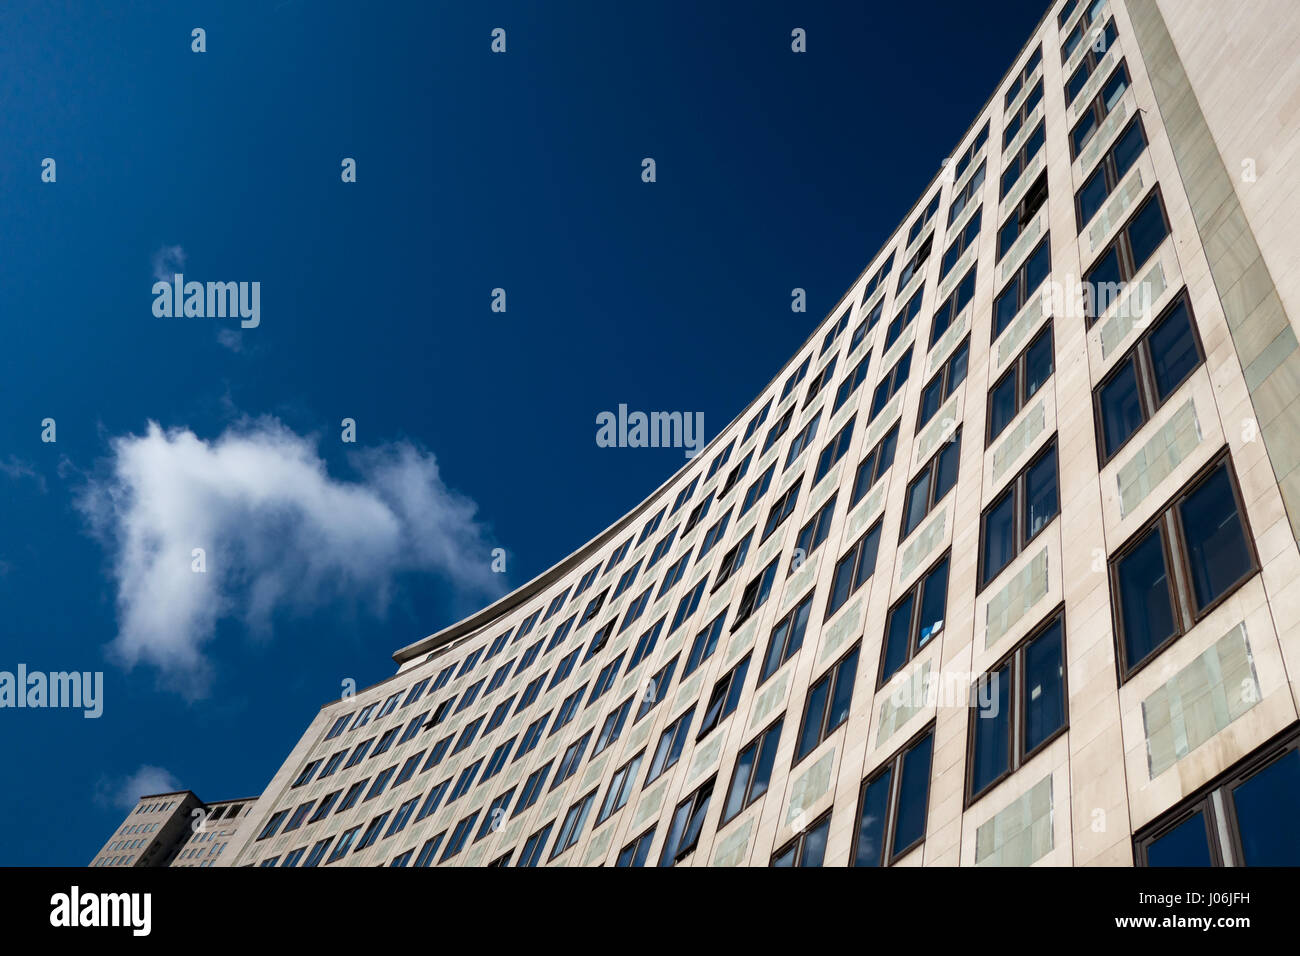 Portland stone facade of The Whitehouse by London Southbank - Stock Image